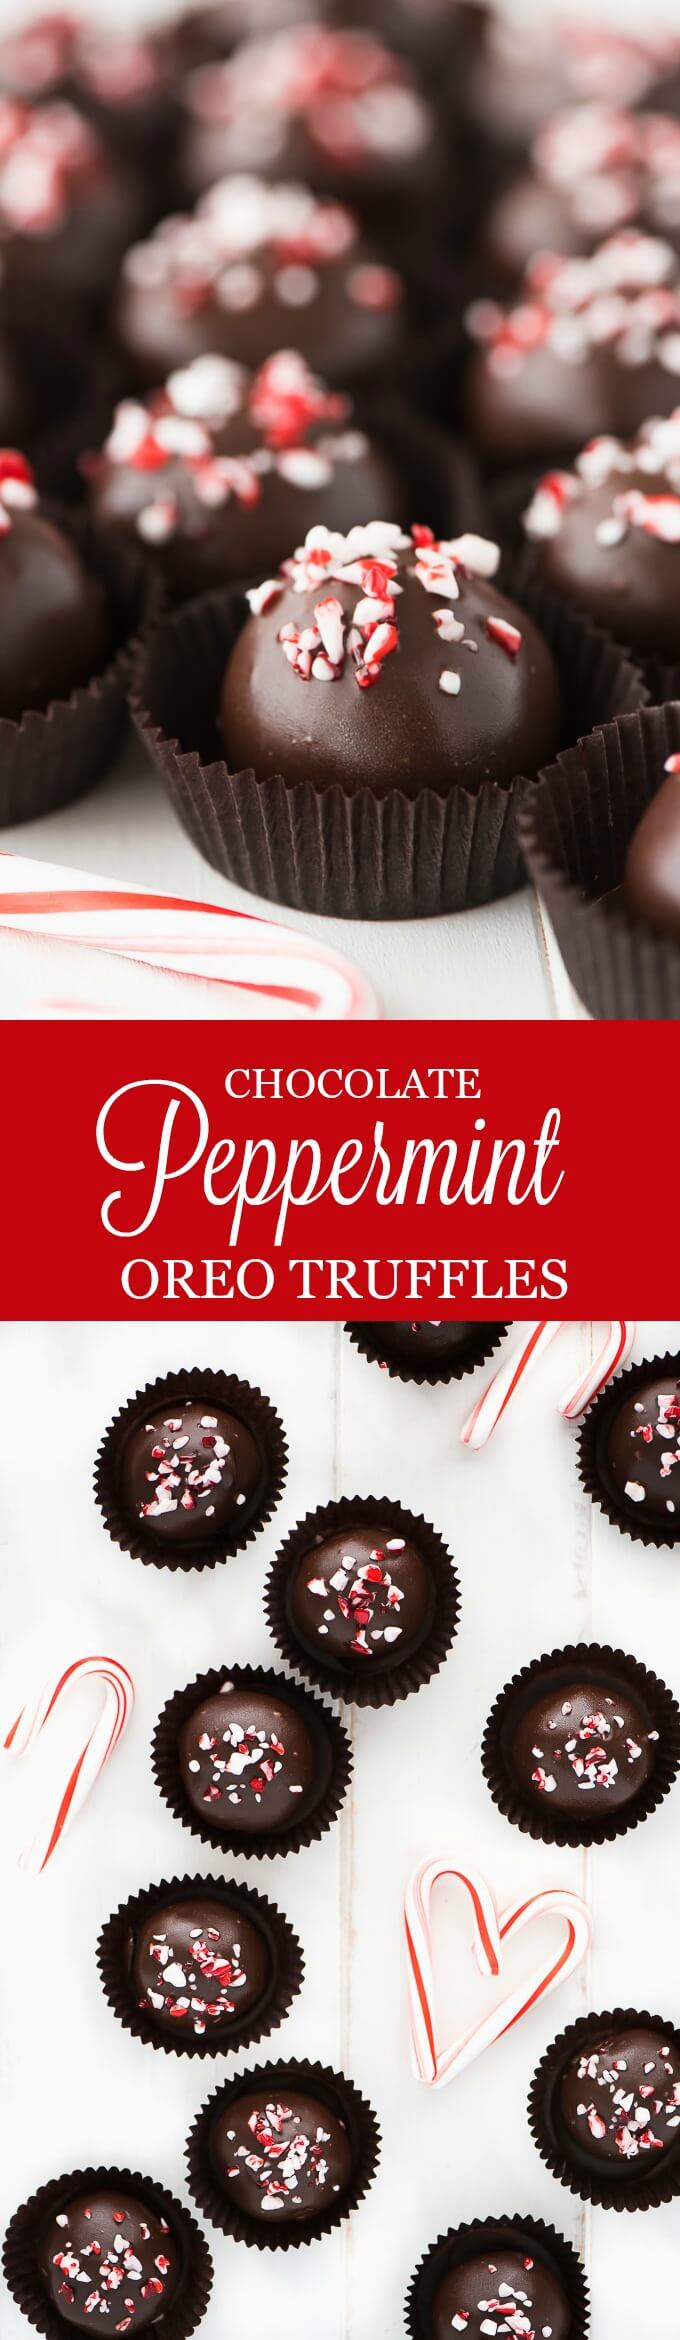 Spread the holiday cheer to those you love with a plate full of these super easy and delicious rich chocolate Peppermint Chocolate Oreo Truffles.